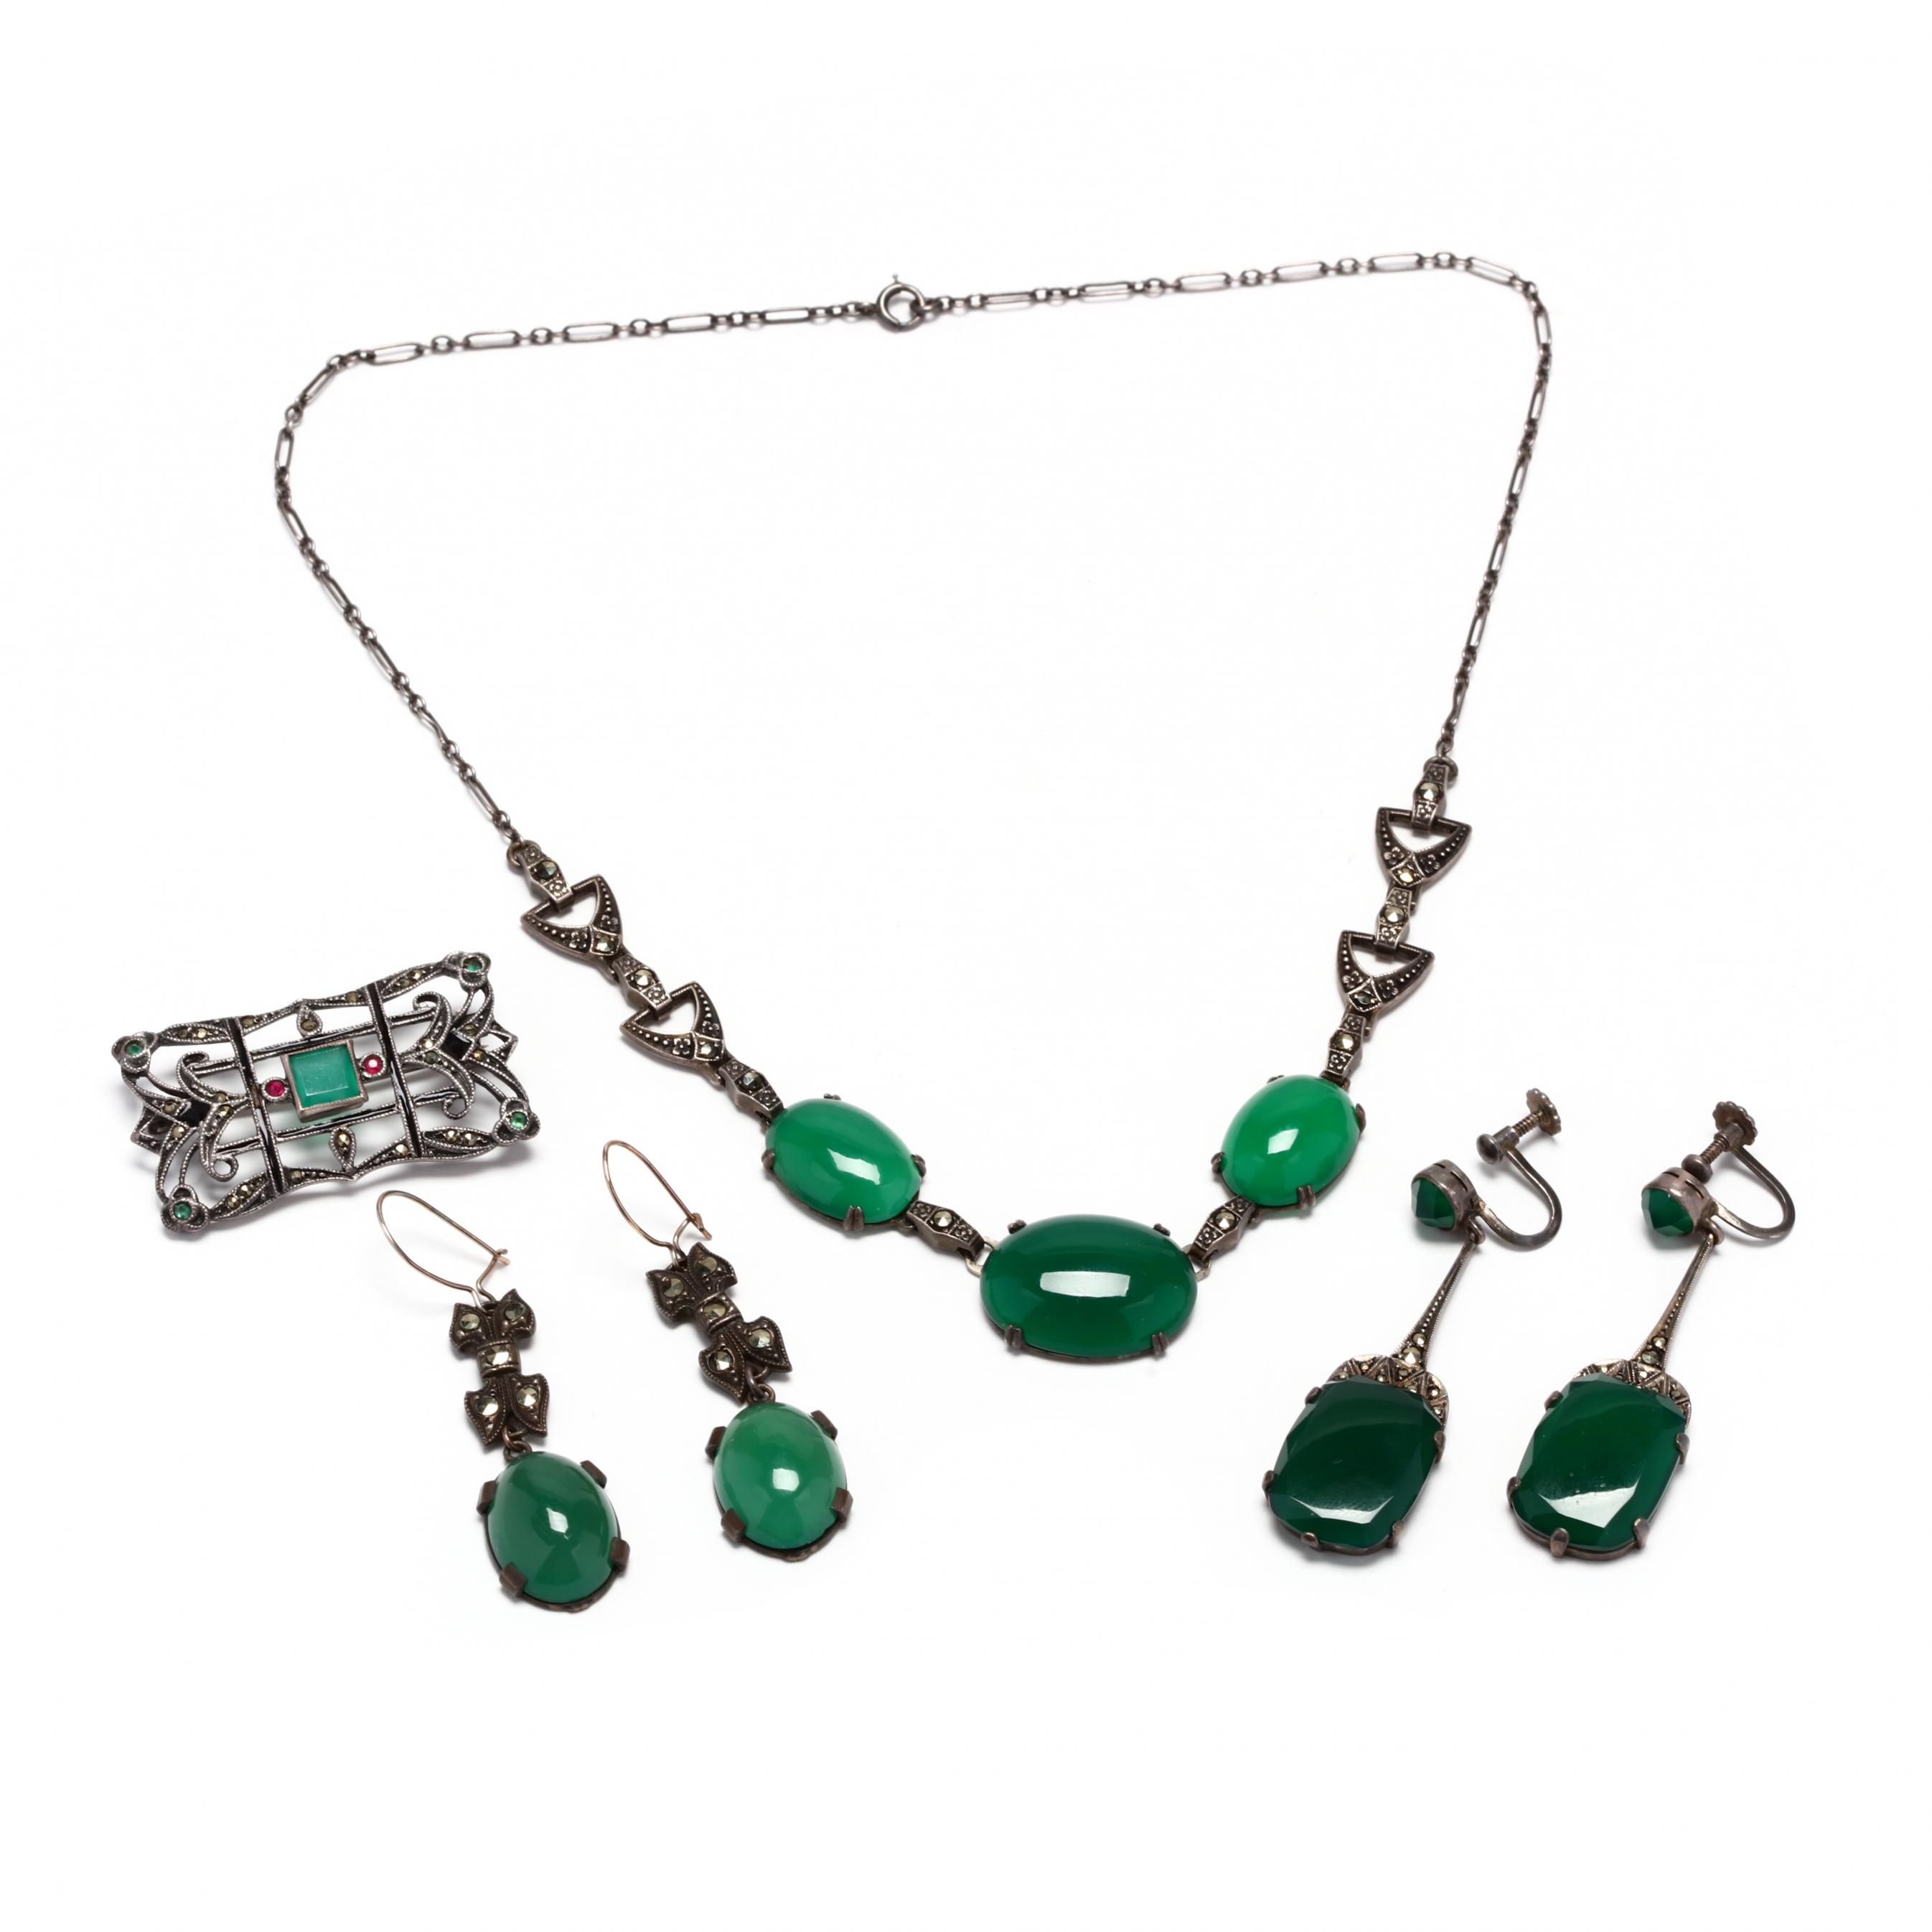 four-art-deco-silver-and-gemstone-jewelry-items